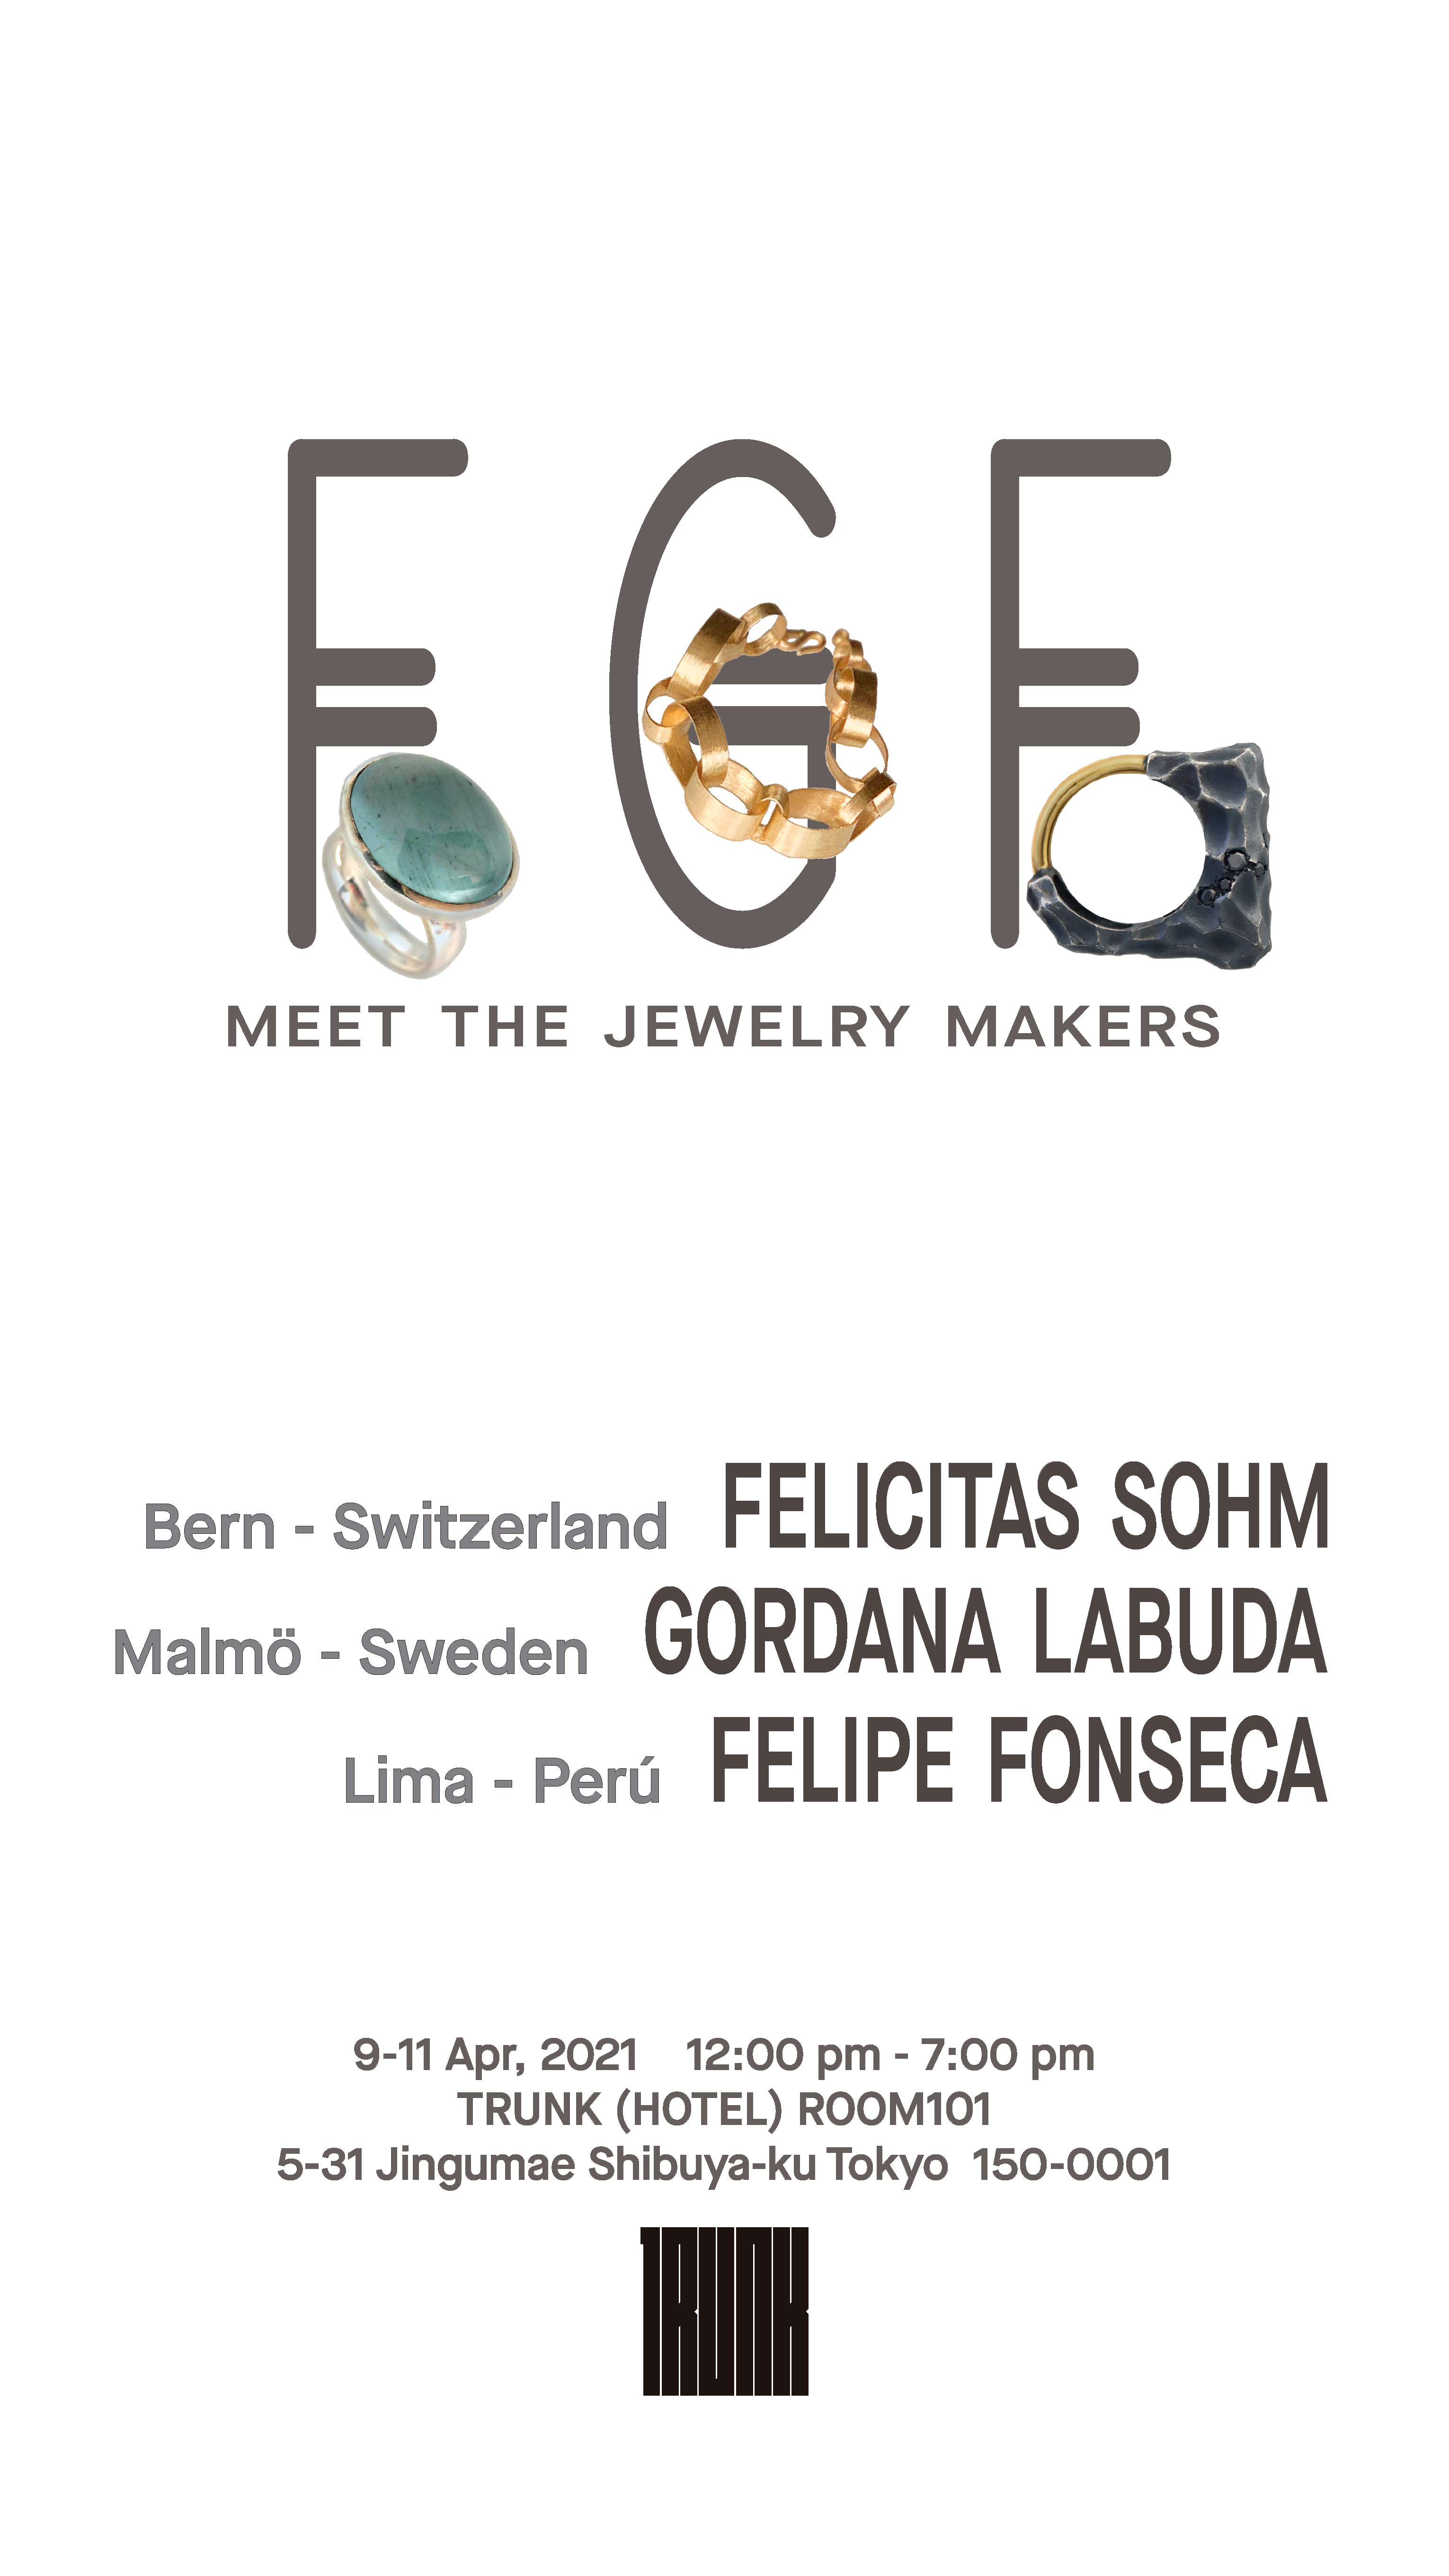 MEET THE JEWELRY MAKERS